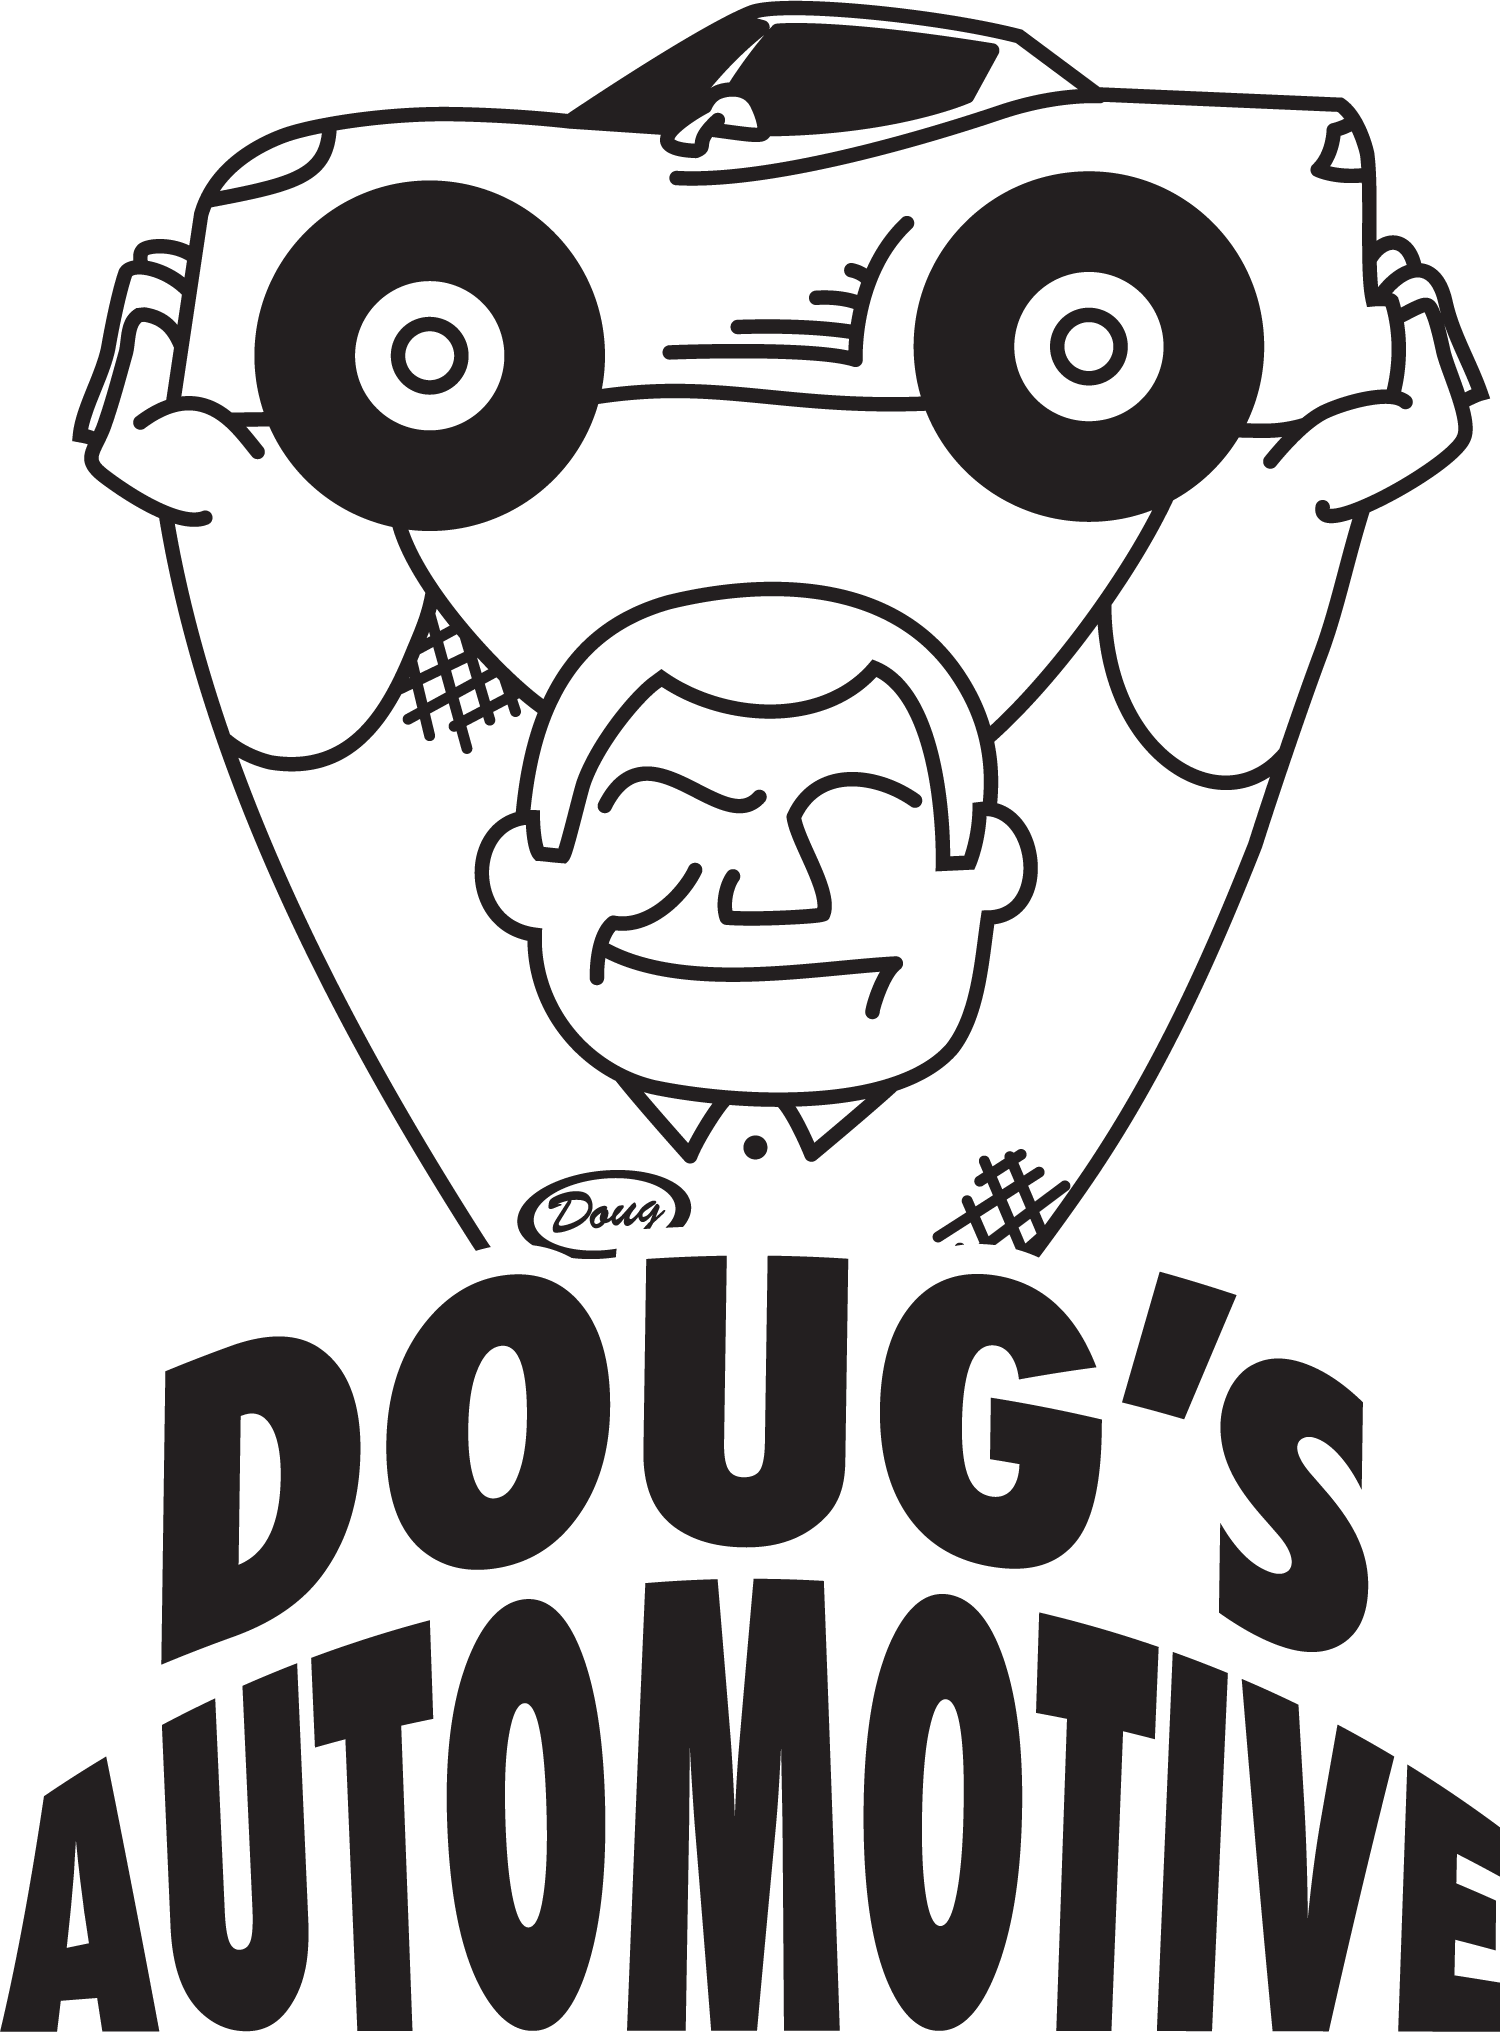 Doug's Automotive